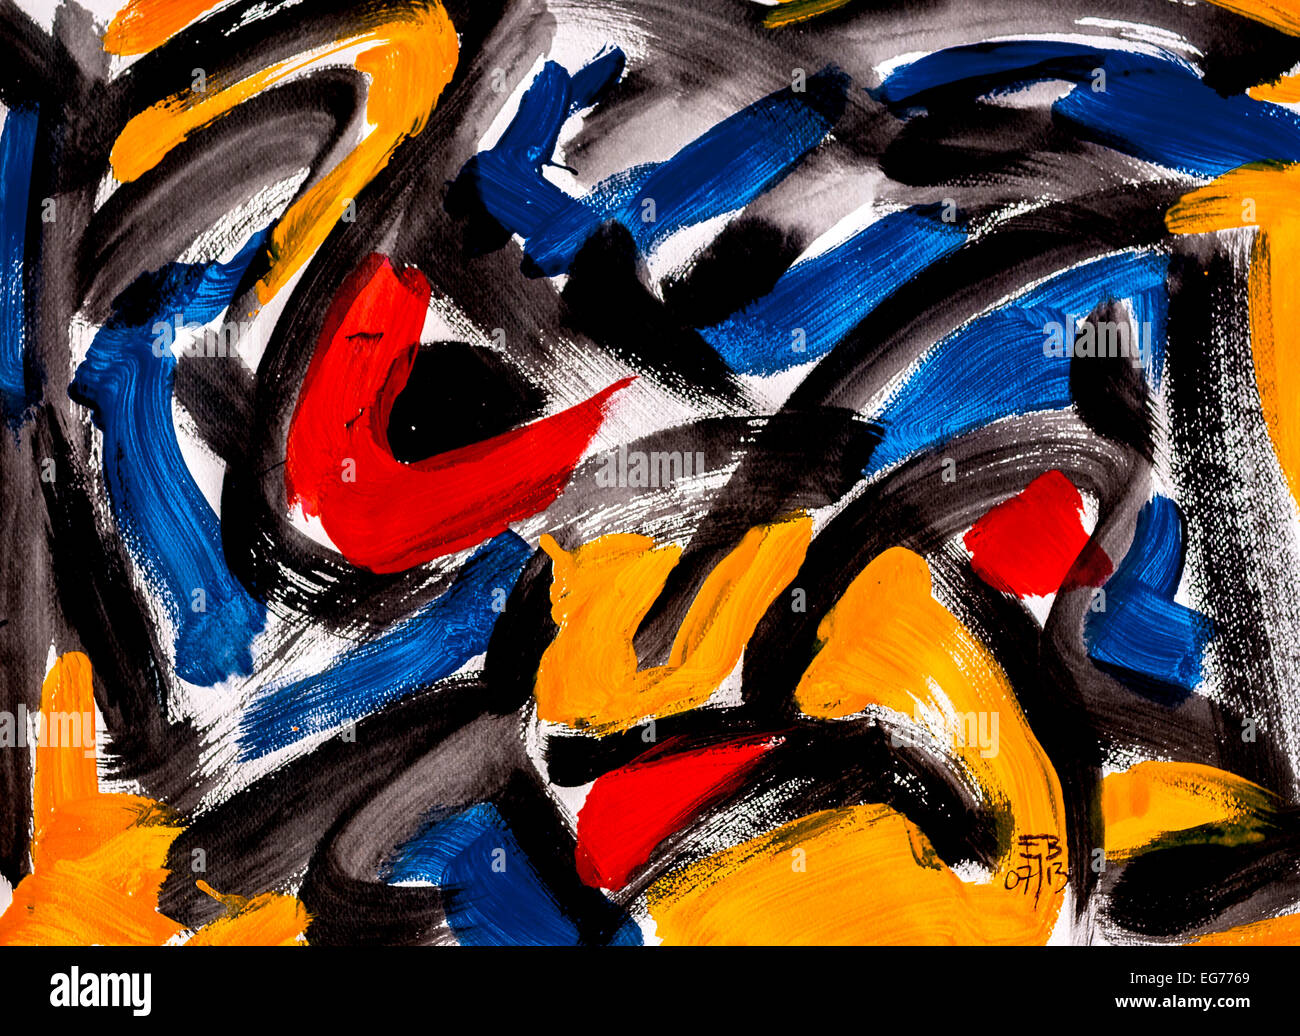 """Modern abstract acrylic painting """"Stained glass"""" by Ed Buziak - France. Stock Photo"""